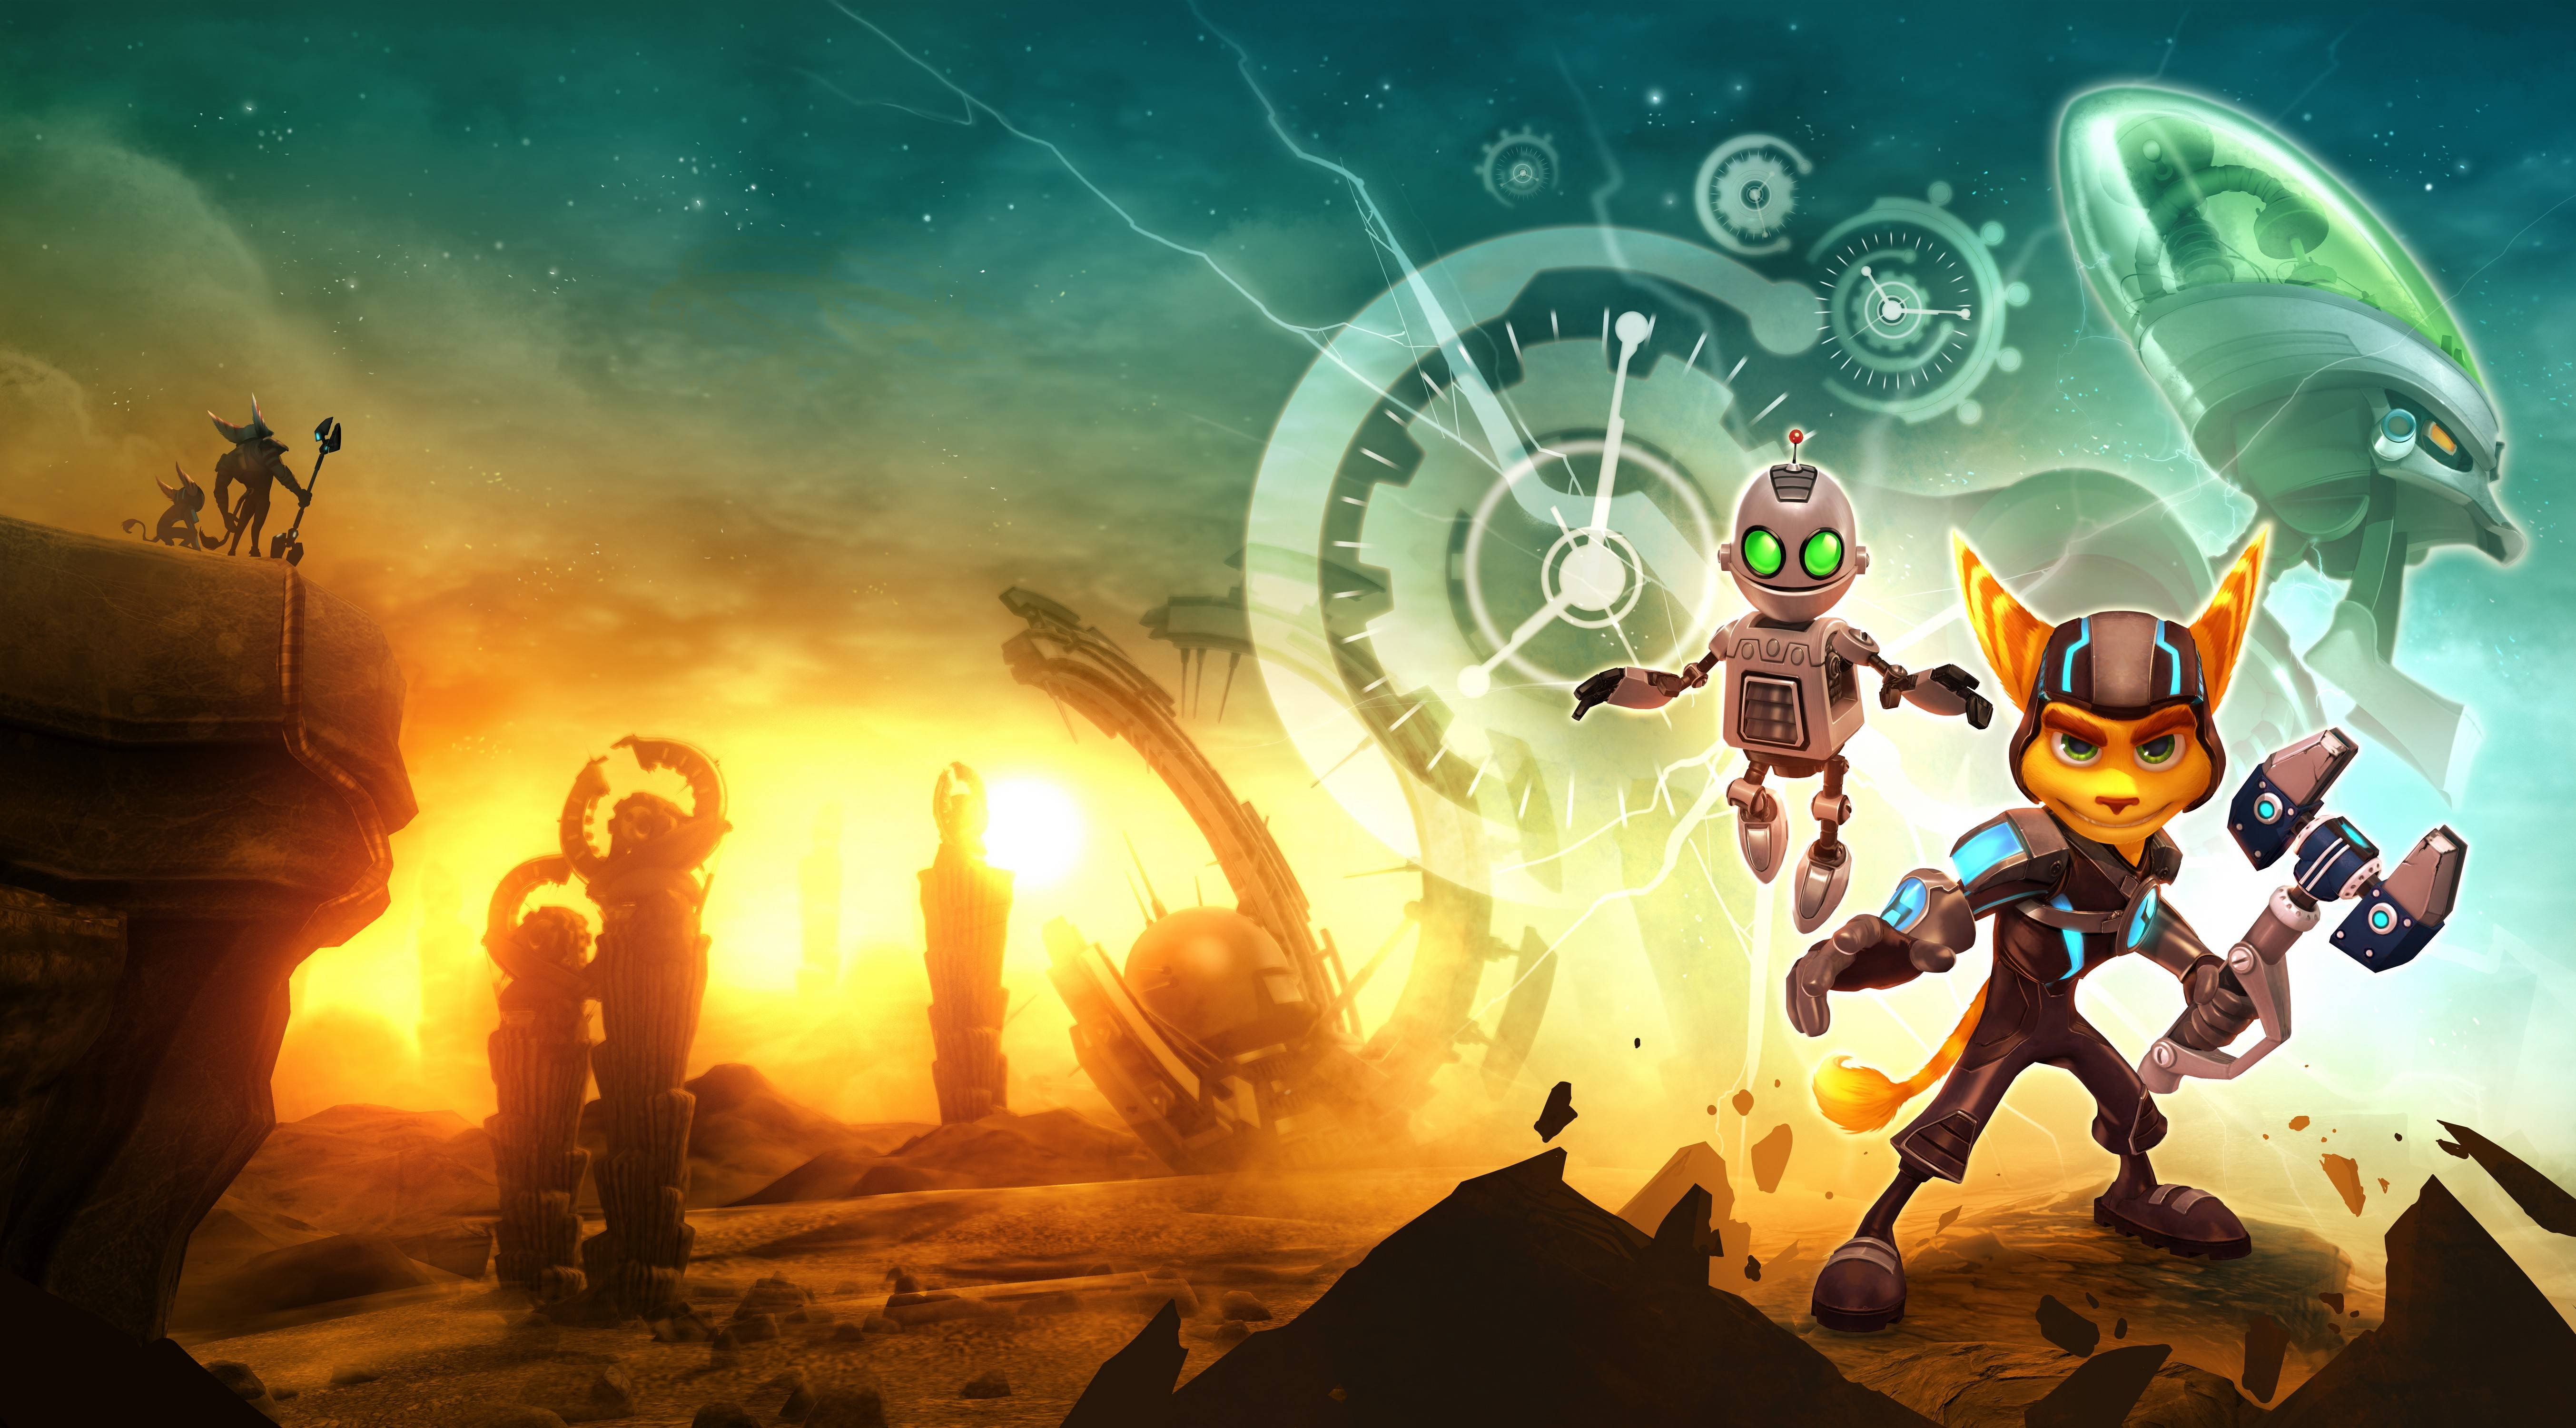 Ratchet and clank wallpapers wallpaper cave for Fond ecran ps4